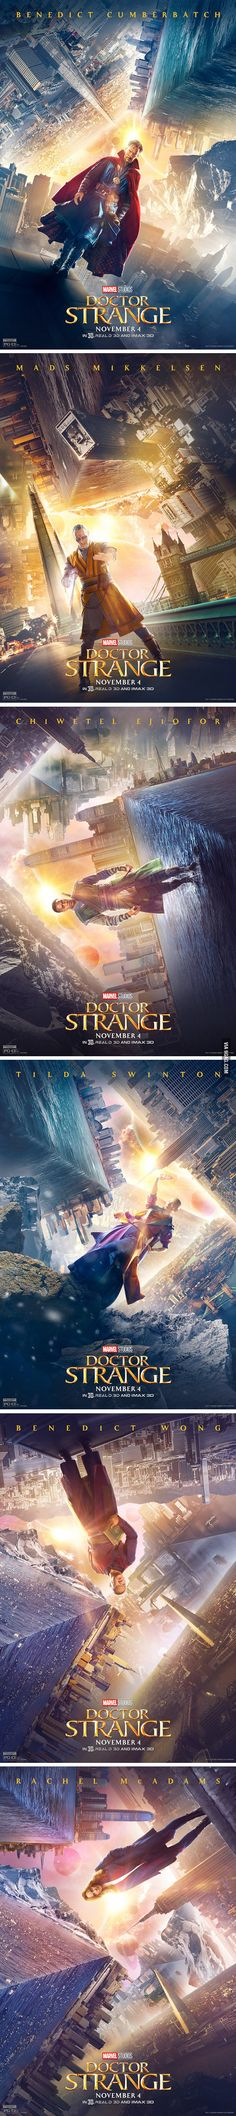 Doctor Strange character posters! Who's excited for this movie? - 9GAG